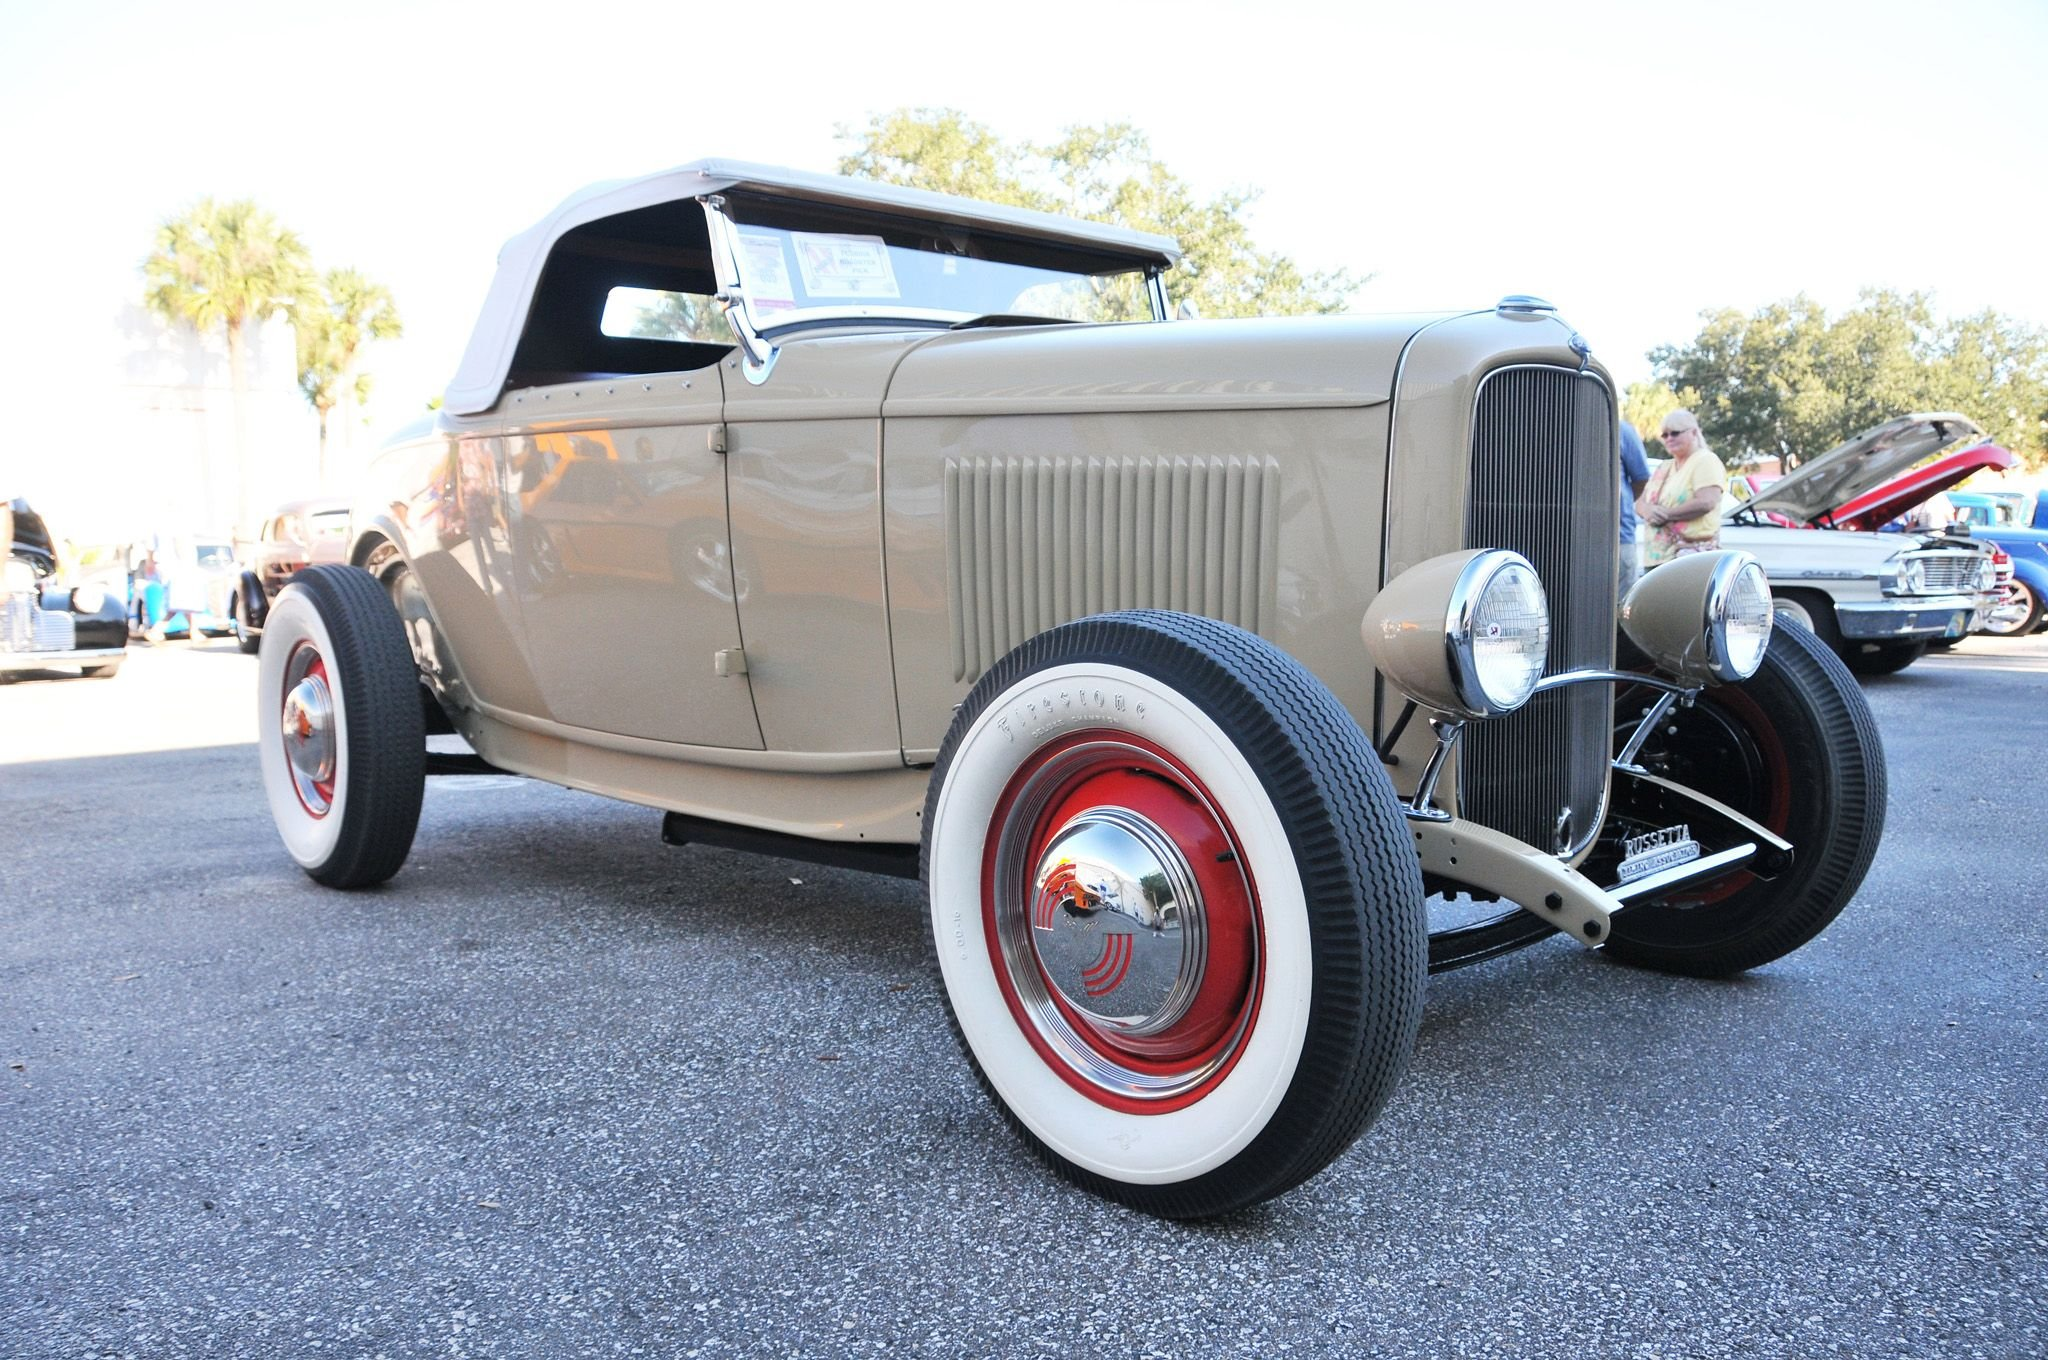 1932 Ford Roadster-12 wallpaper